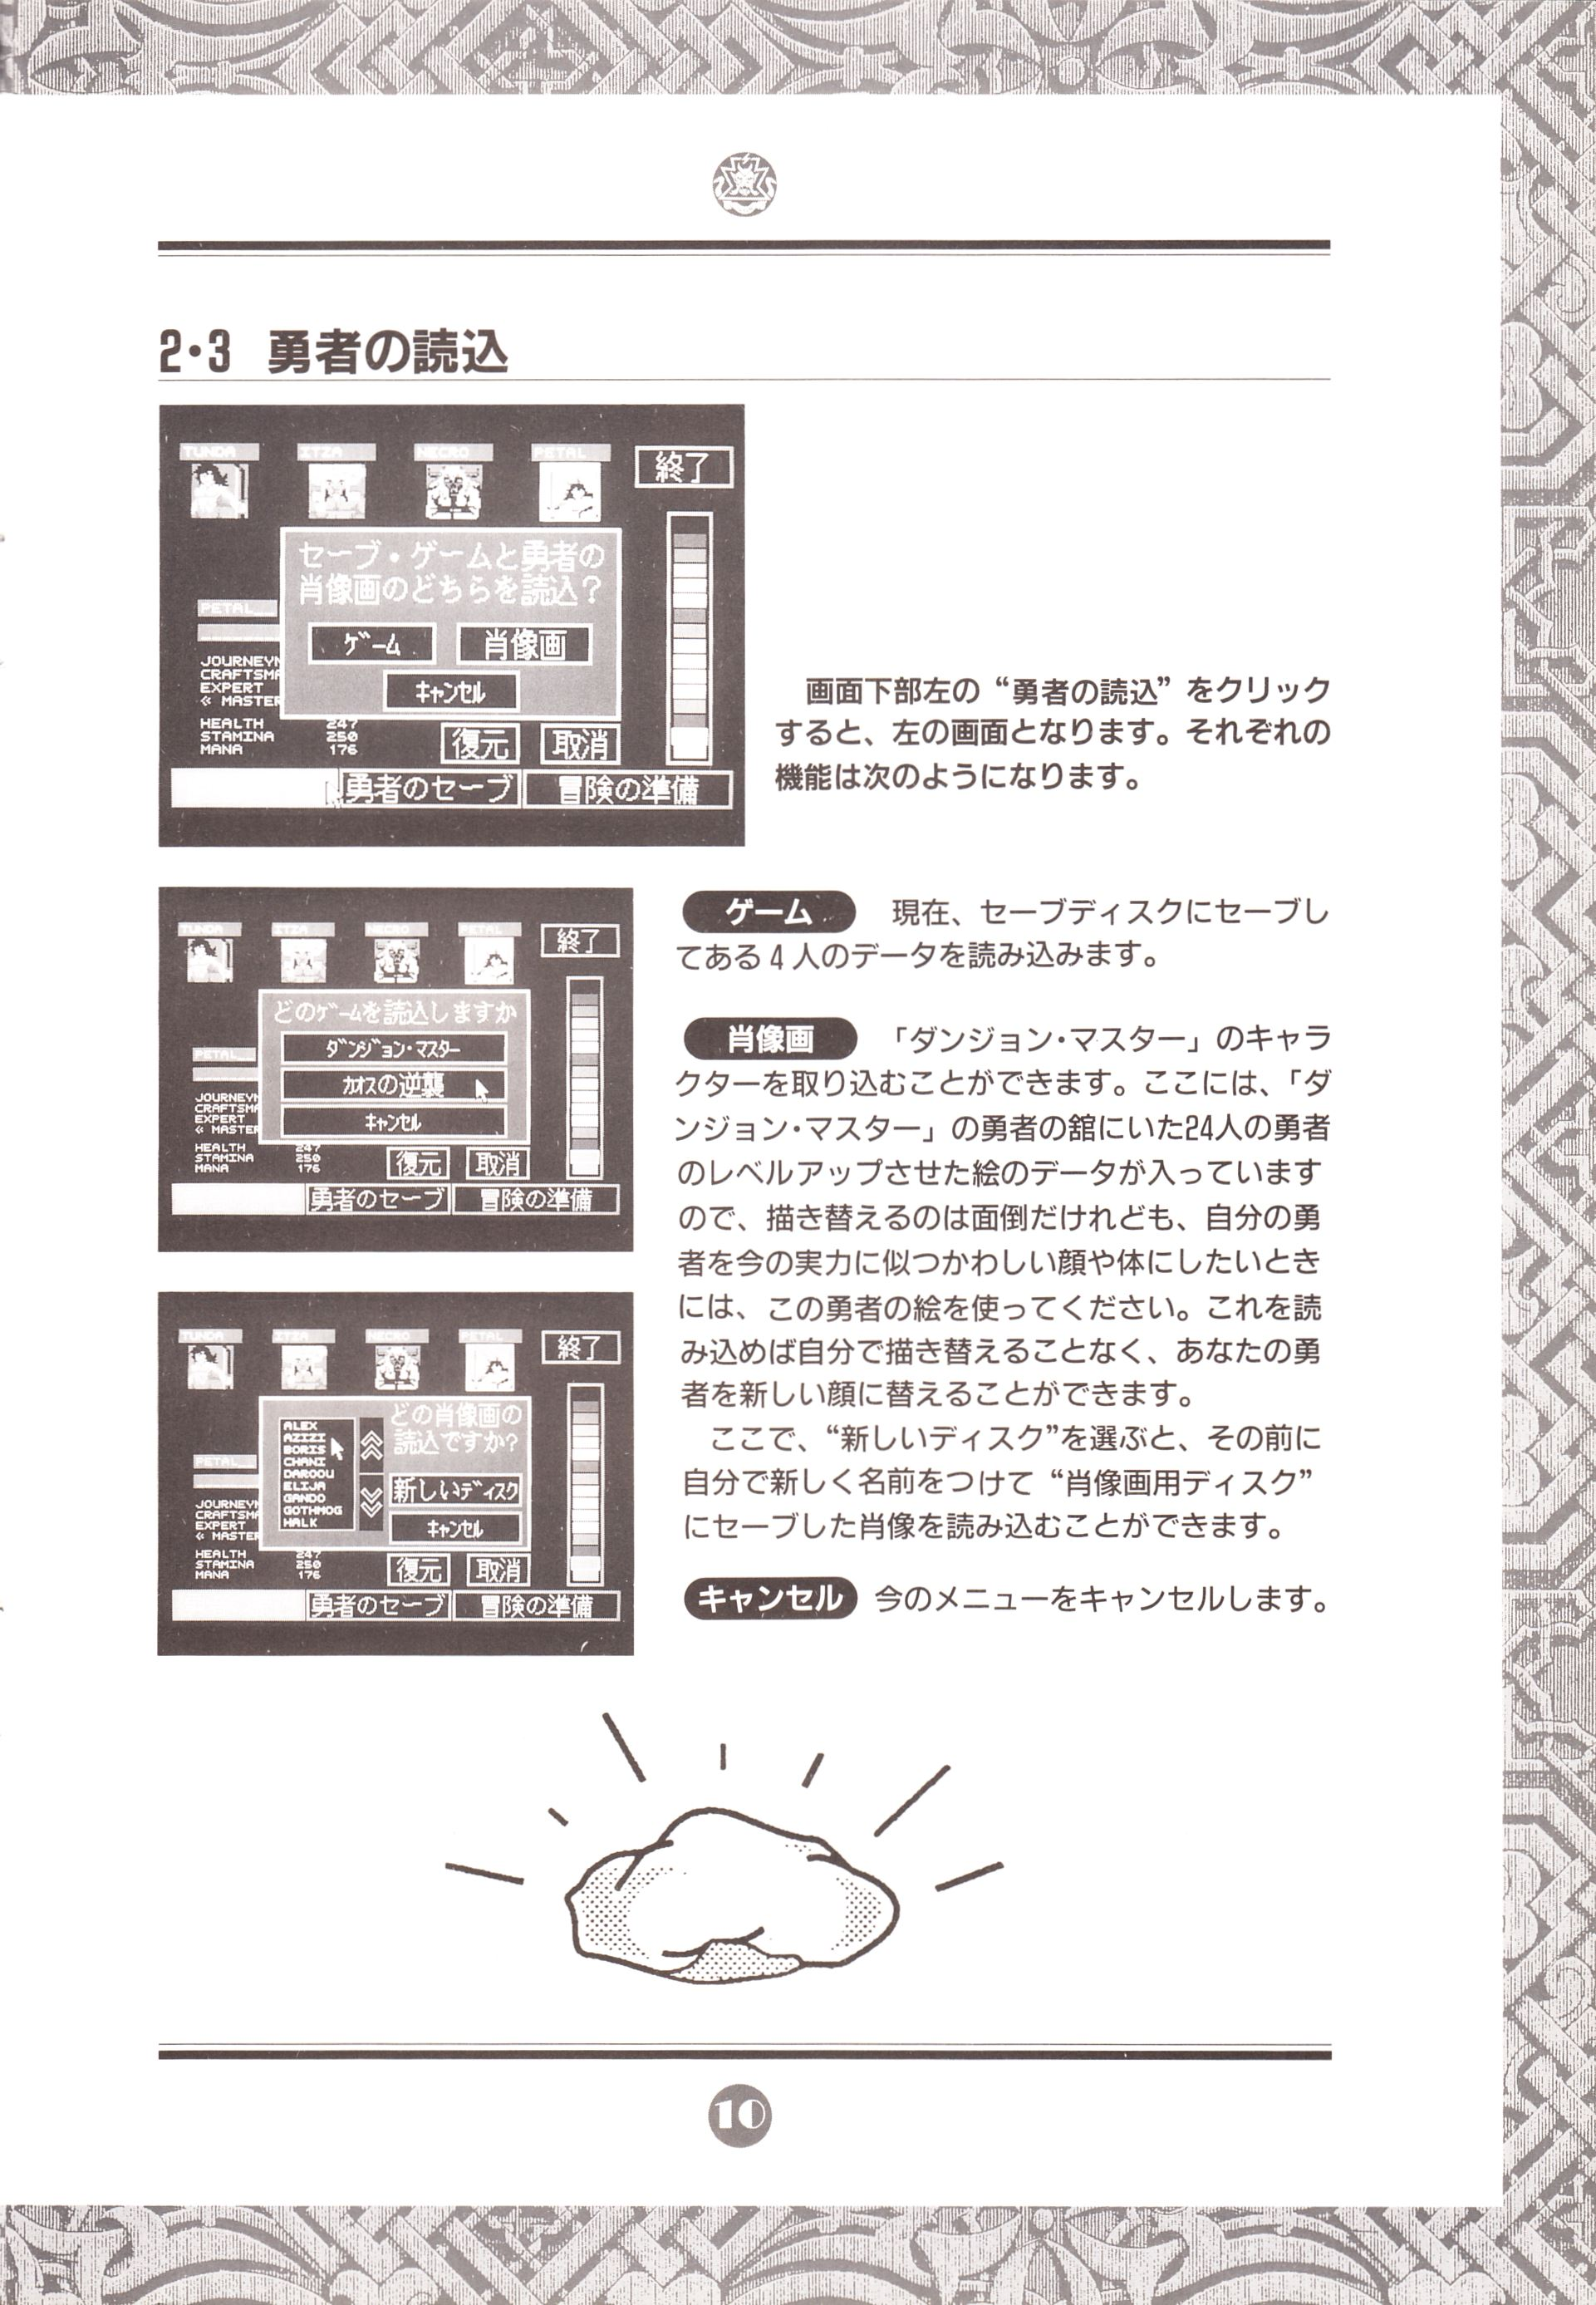 Game - Chaos Strikes Back - JP - PC-9801 - 3-5-inch - An Operation Manual - Page 013 - Scan